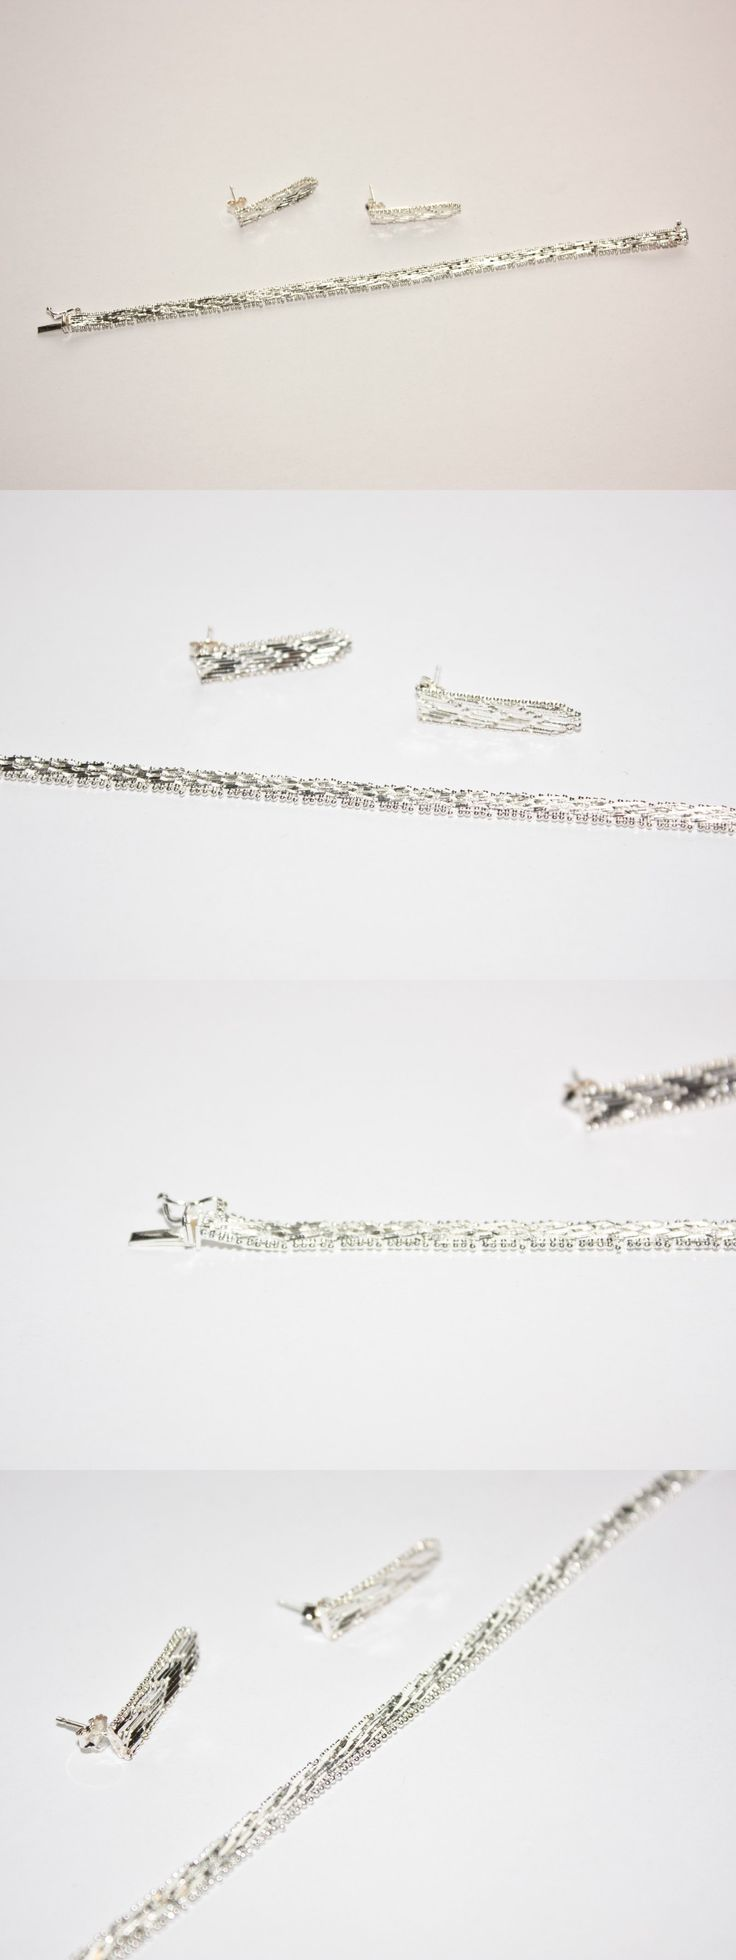 Precious Metal without Stones 164325: Bnwot Qvc Riccio Sterling Silver Bracelet And Earrings Set! -> BUY IT NOW ONLY: $53.62 on eBay!